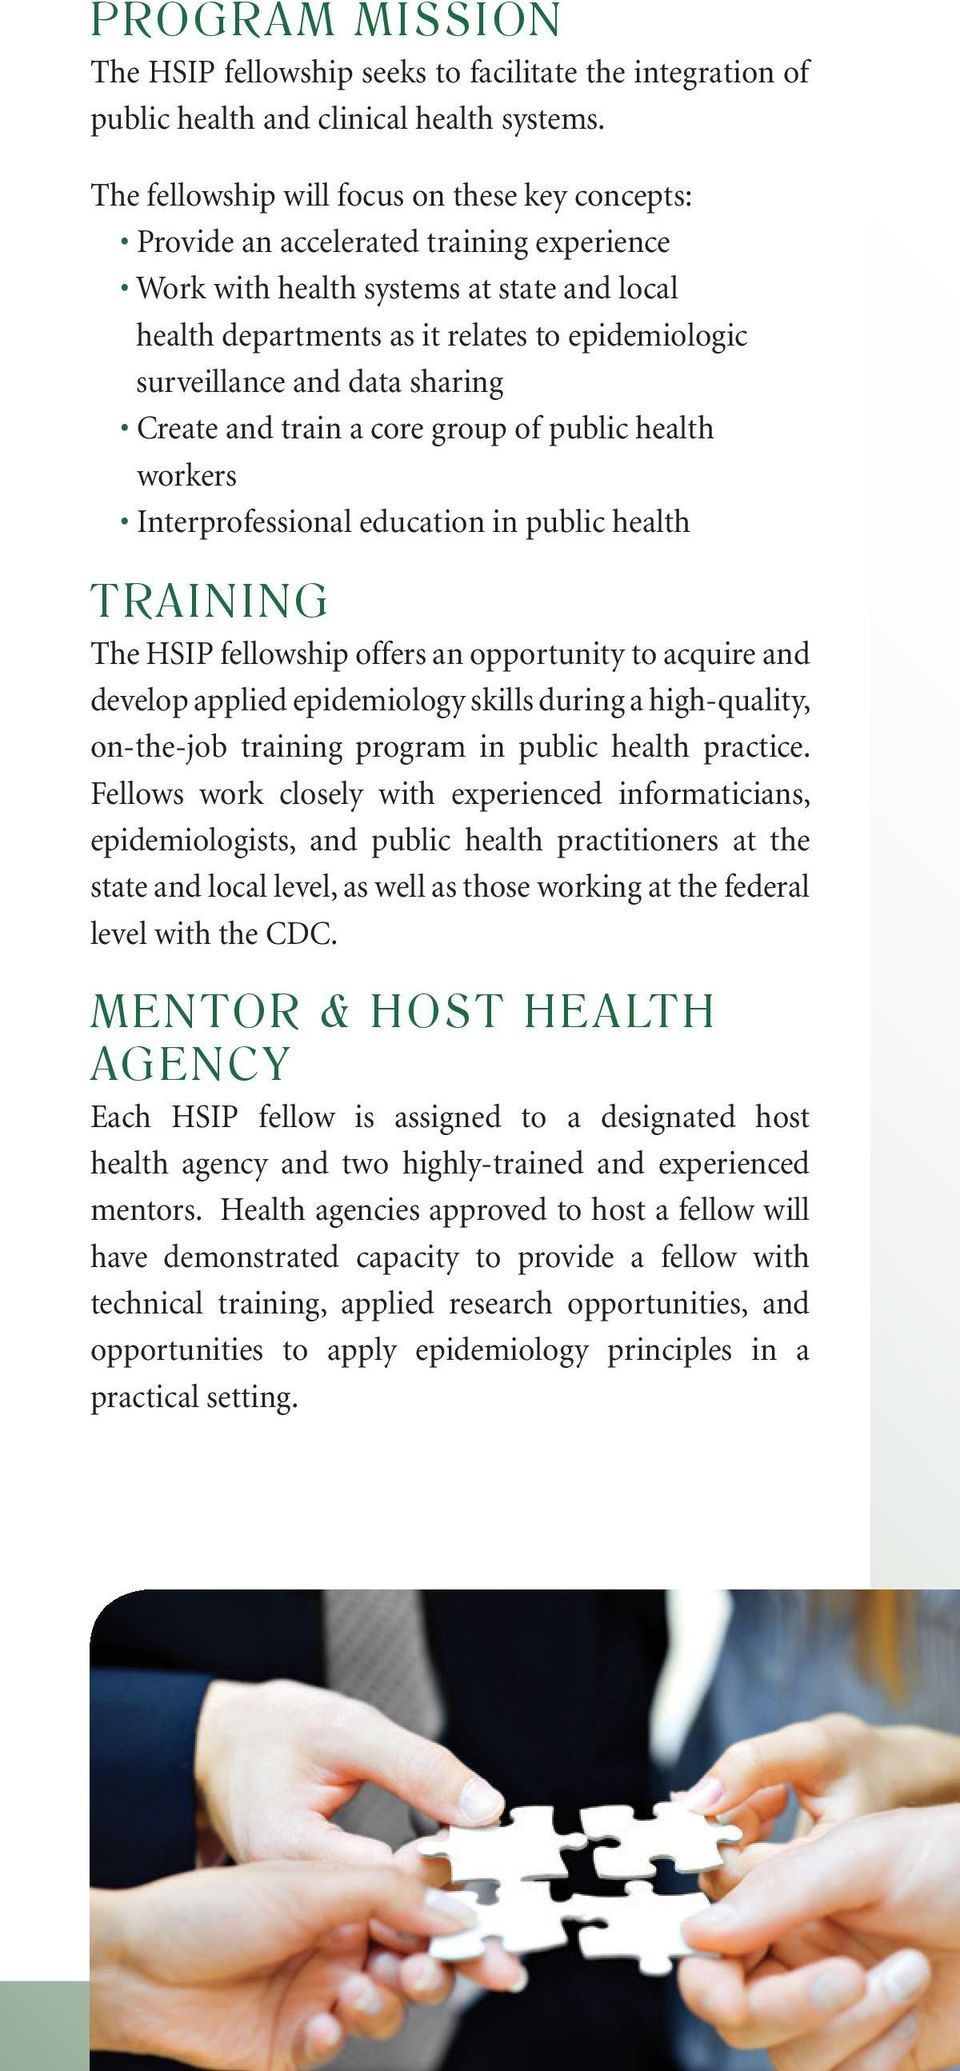 and data sharing Create and train a core group of public health workers Interprofessional education in public health TRAINING The HSIP fellowship offers an opportunity to acquire and develop applied